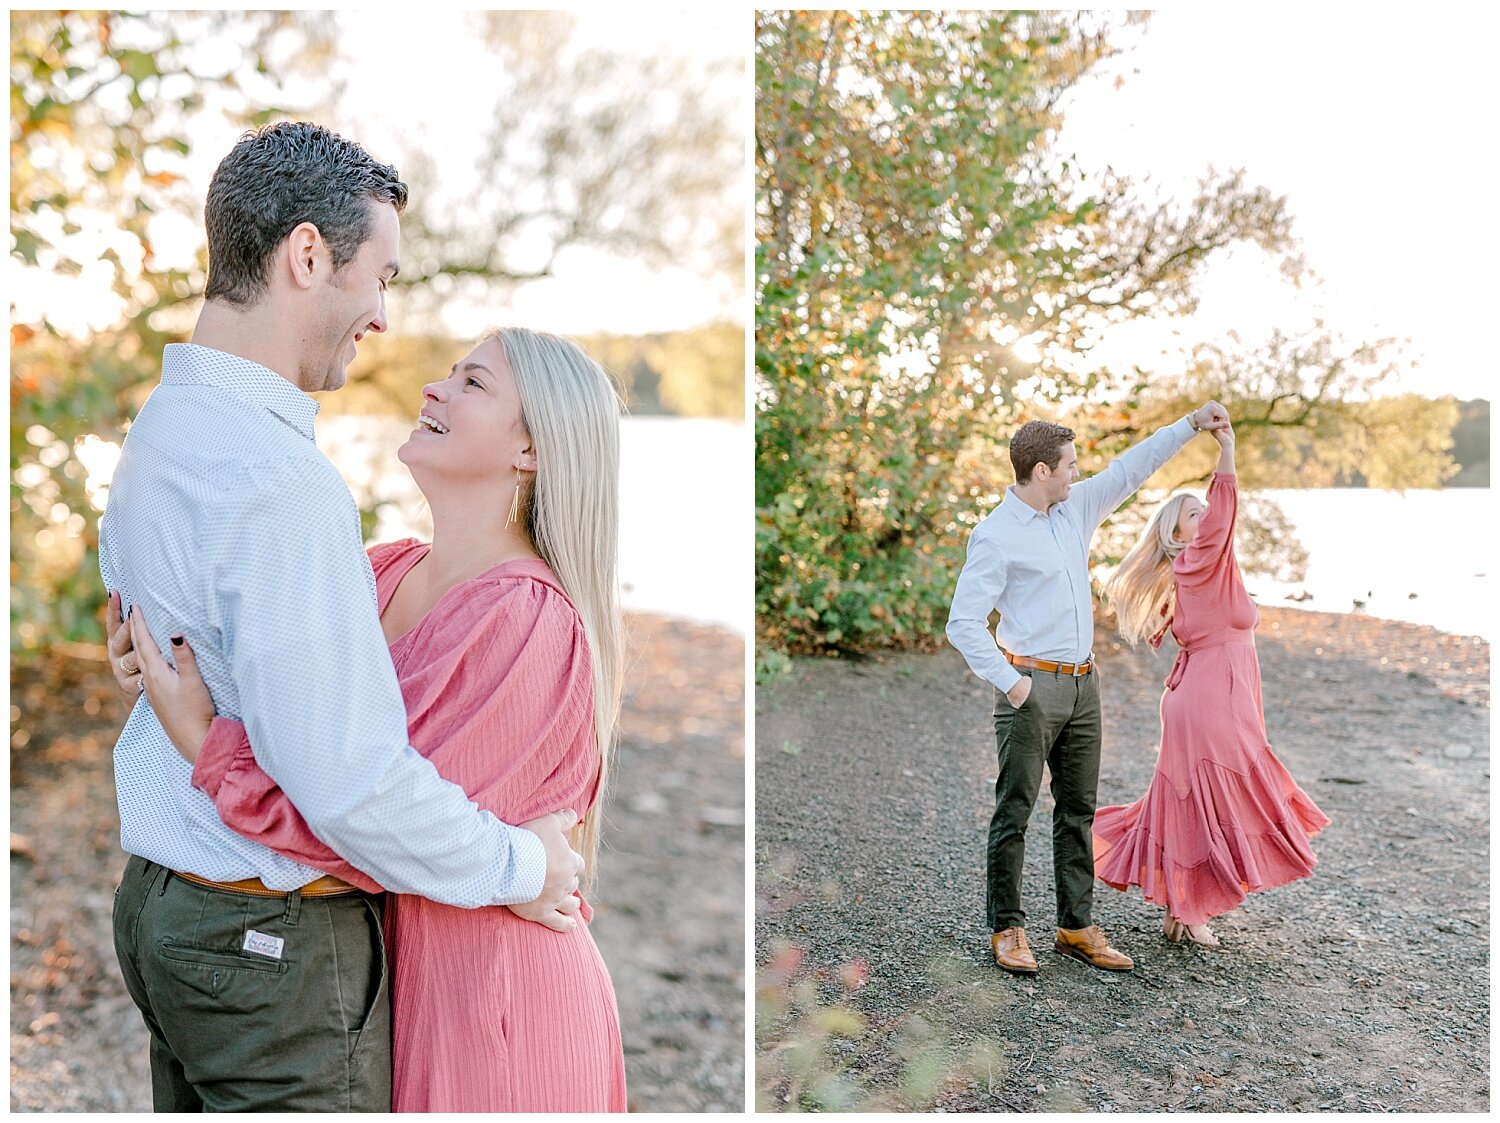 Peace Valley Park Doylestown bucks county PA fall sunrise engagement session  lehigh valley pennsylvania based wedding and lifestyle photographer Jeannie Lytle of Lytle Photography Company_0010.jpg